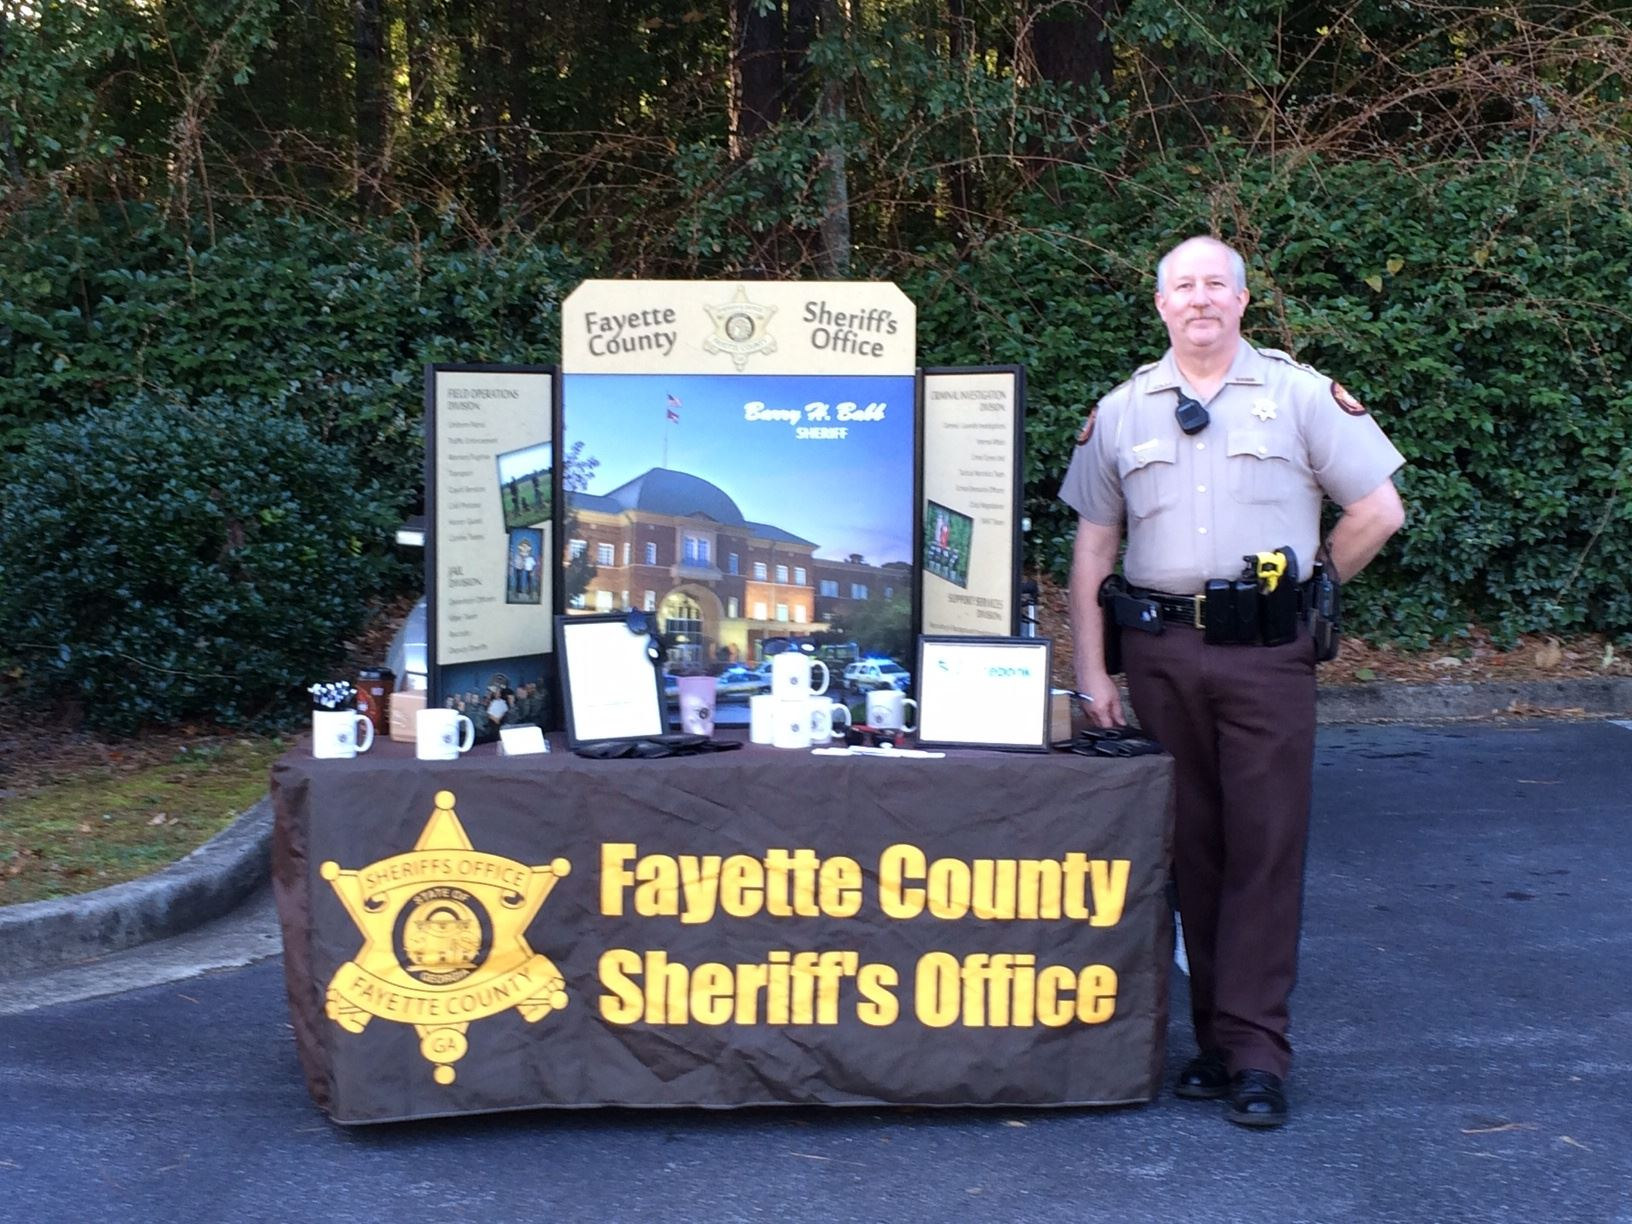 Fayette County Sheriffs Office Table